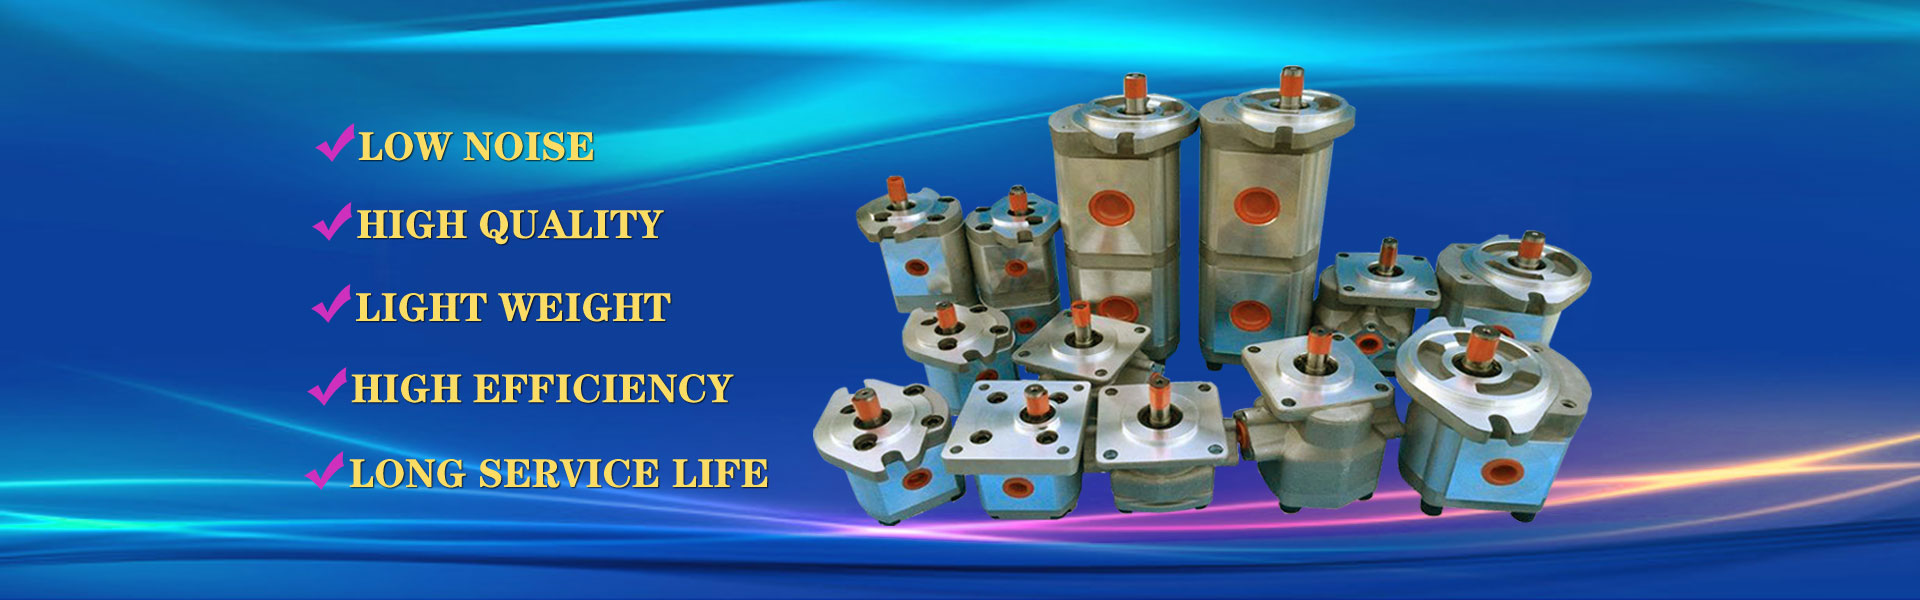 Dongguan Dali Fluid Technology Co., Ltd